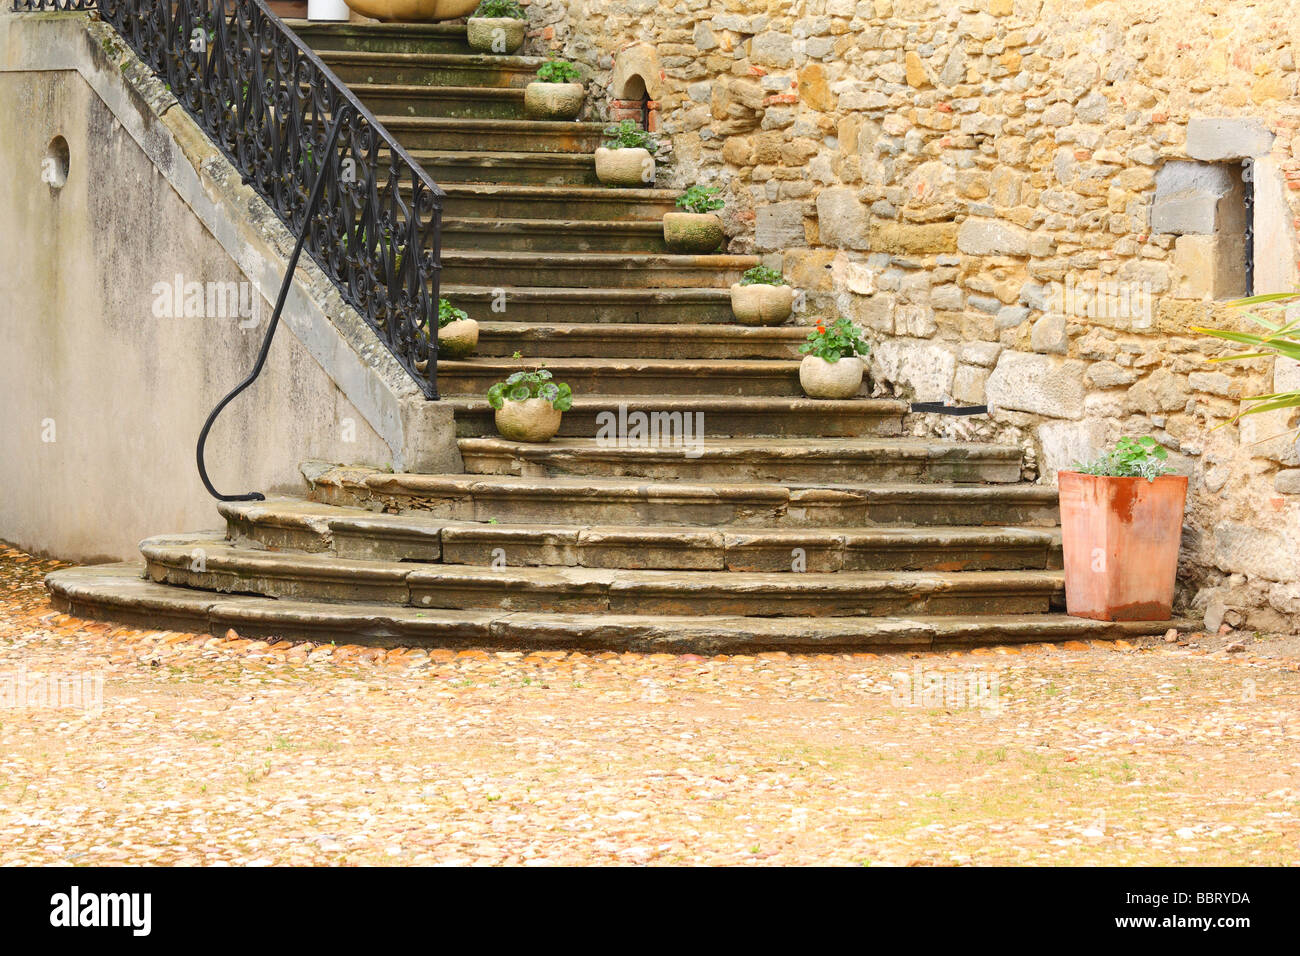 Stairs Saint Papoul Languedoc-Roussillon France - Stock Image